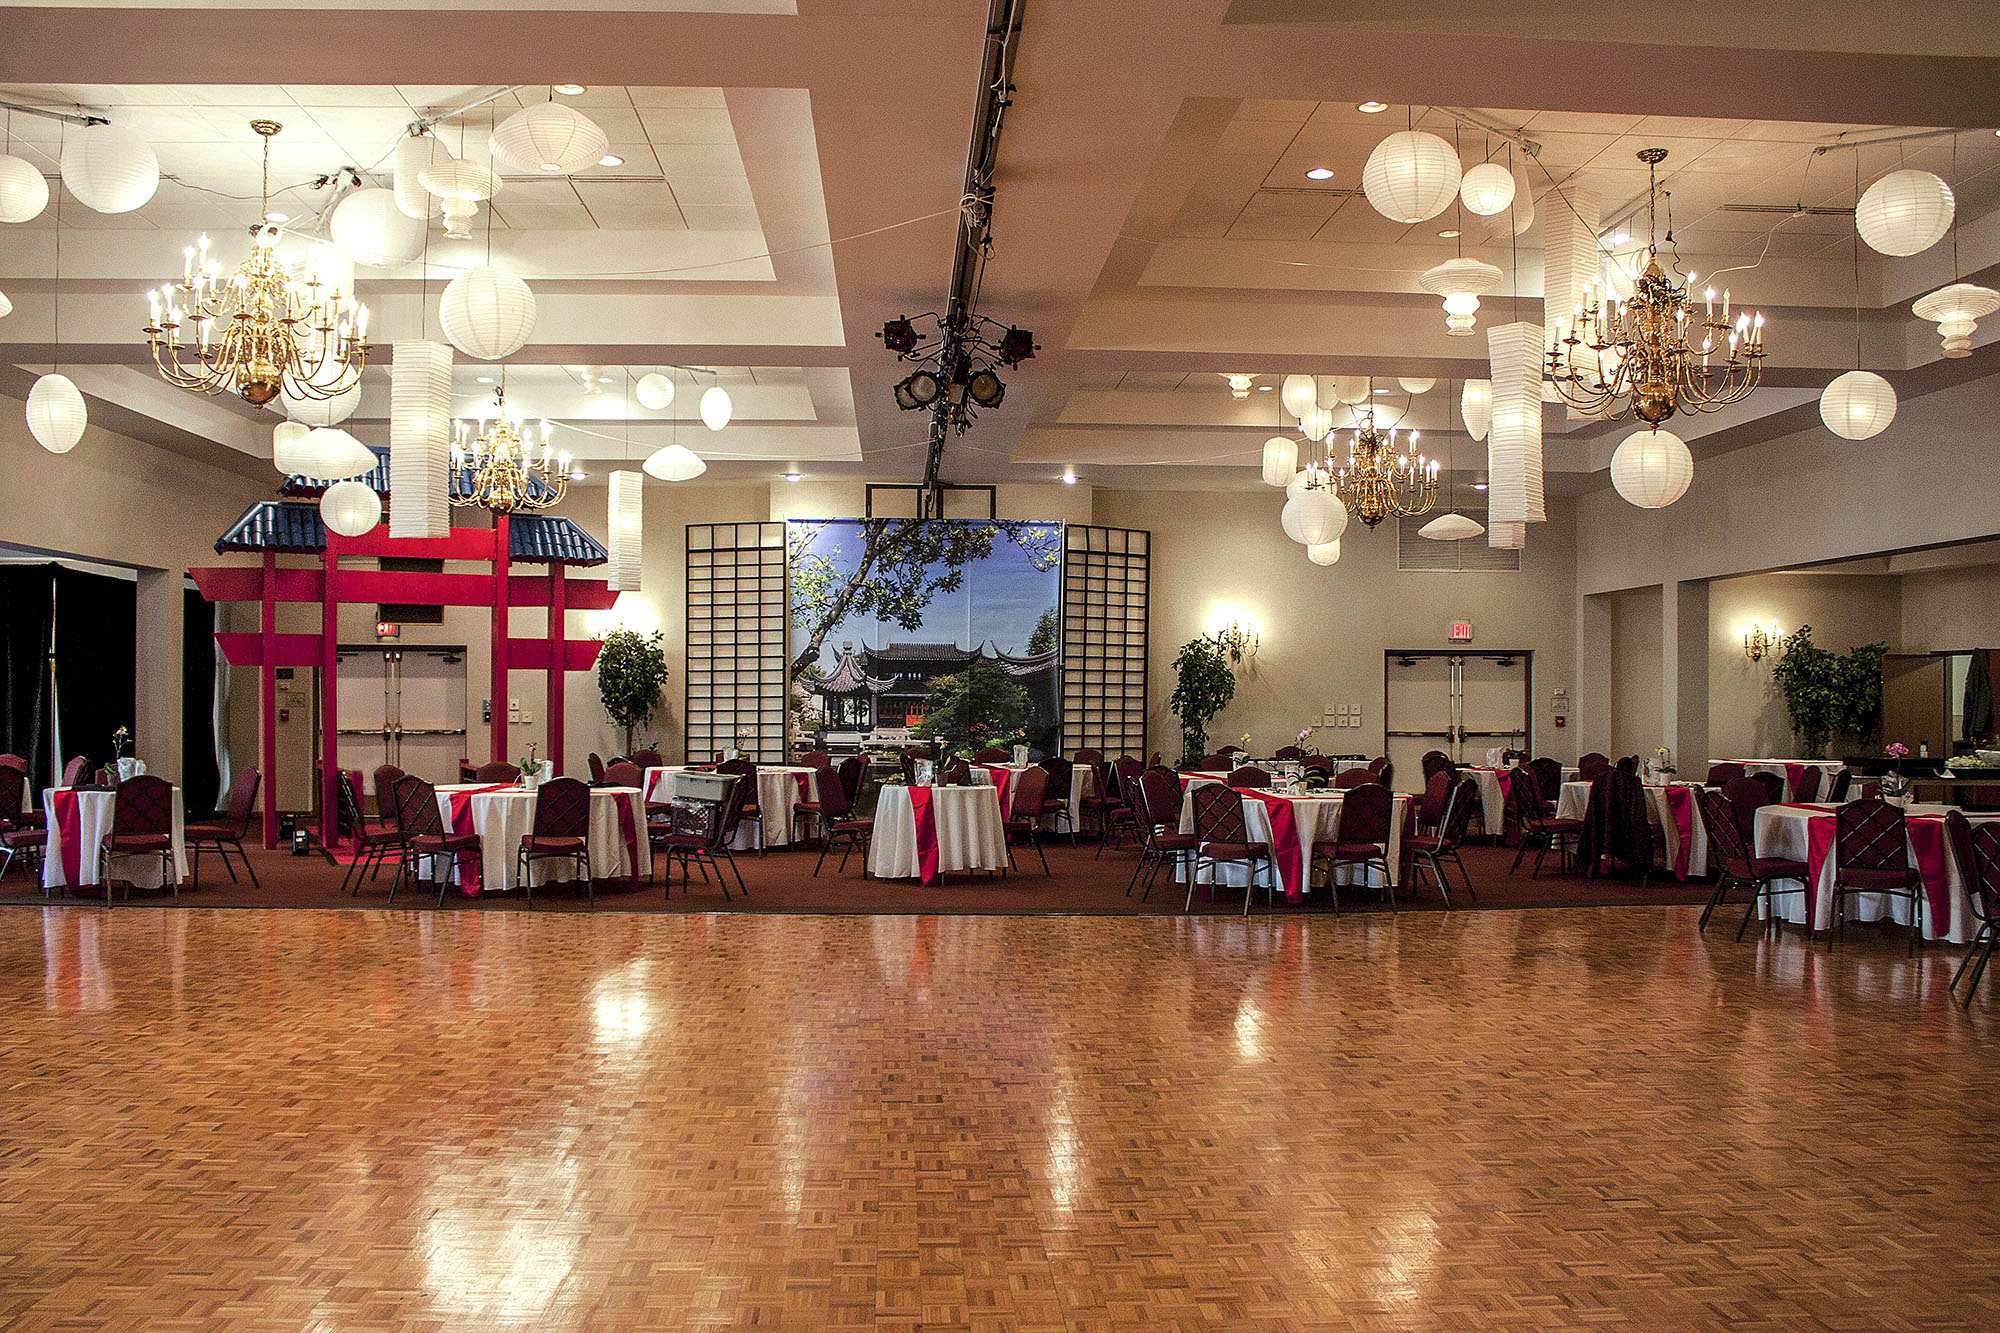 Rental hall banquet center facility in columbus ohio